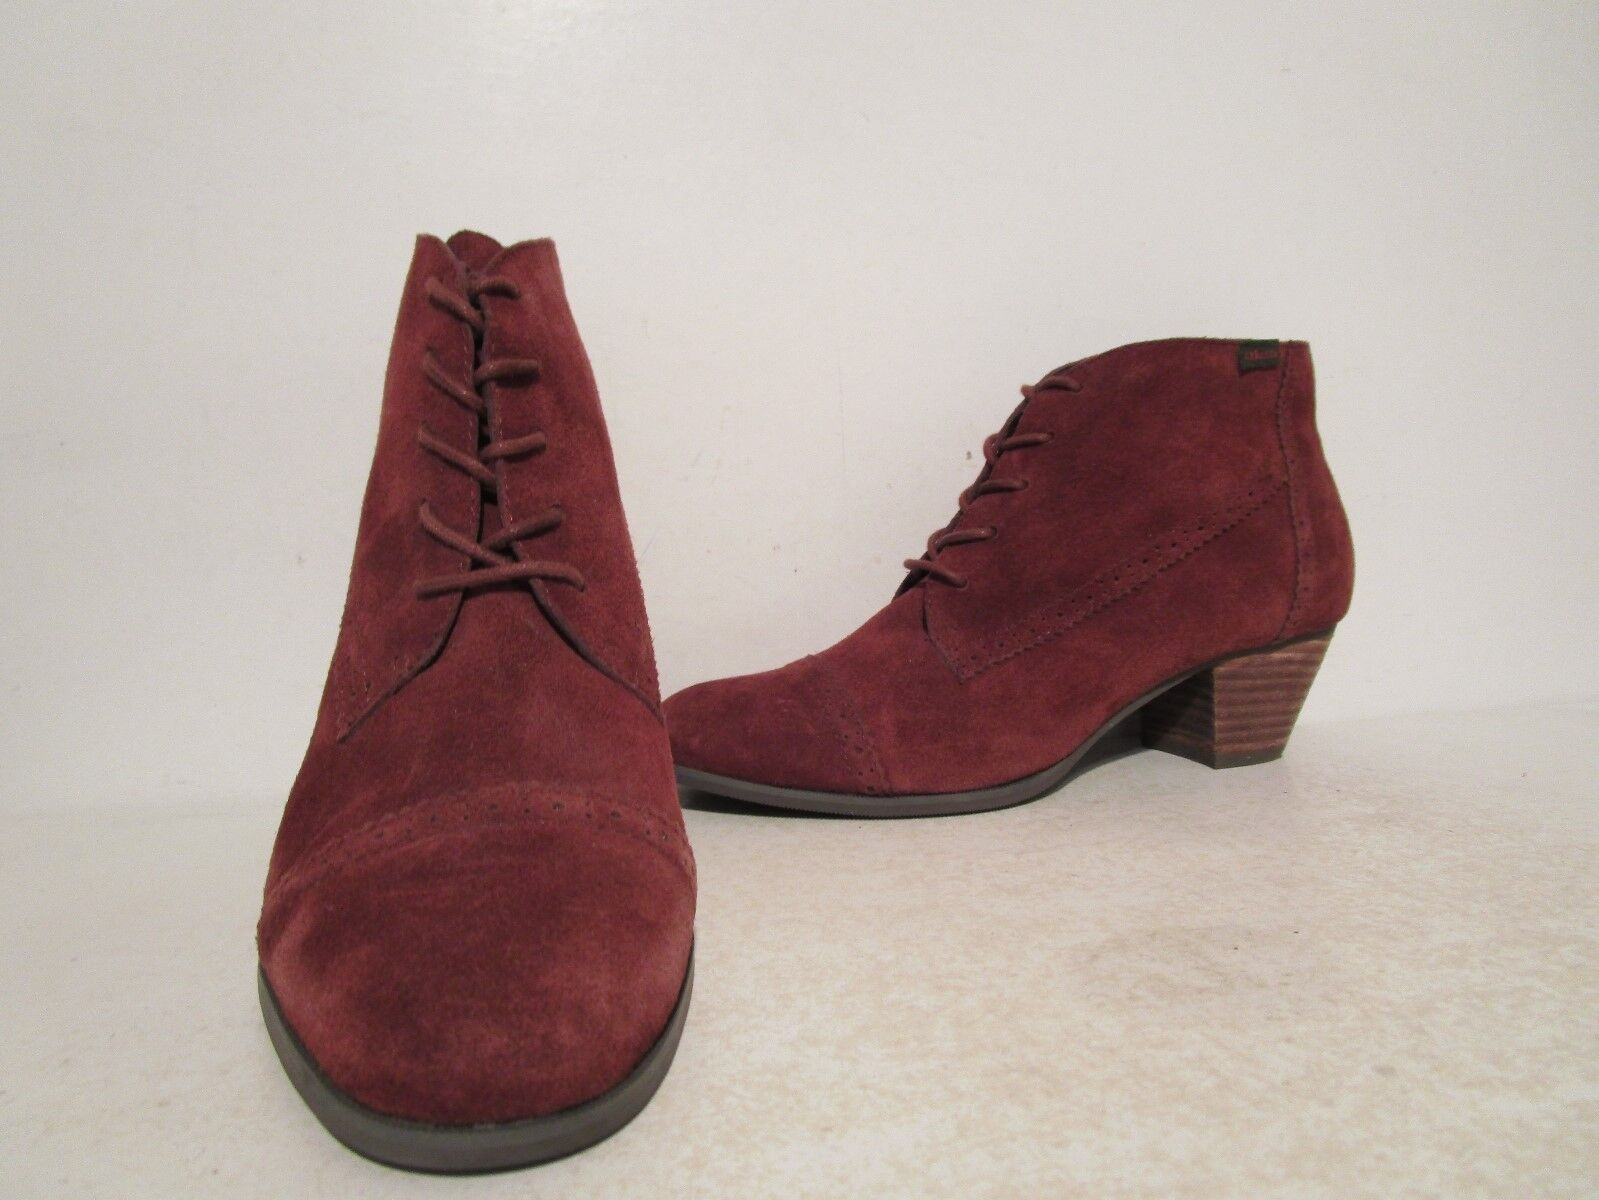 Bass Womens Porter Vintage Sleek Lace Up Casual Ankle Booties Brownstone Size 9